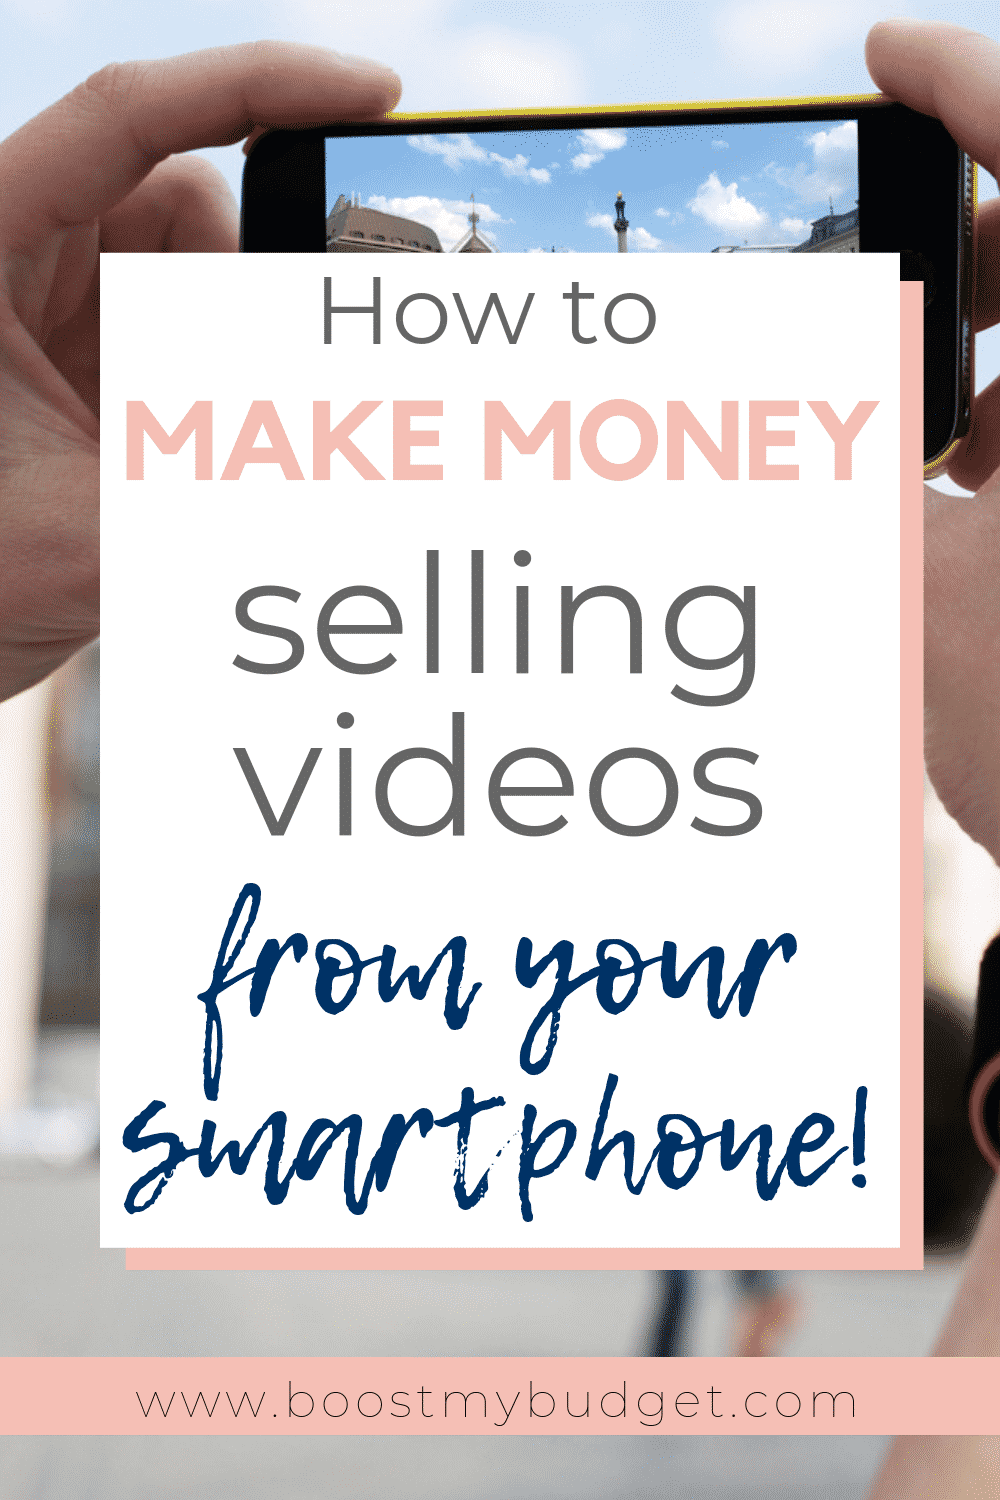 Learn how to make money selling funny viral videos straight from your smartphone! Learn which sites to upload your videos to to make money here,